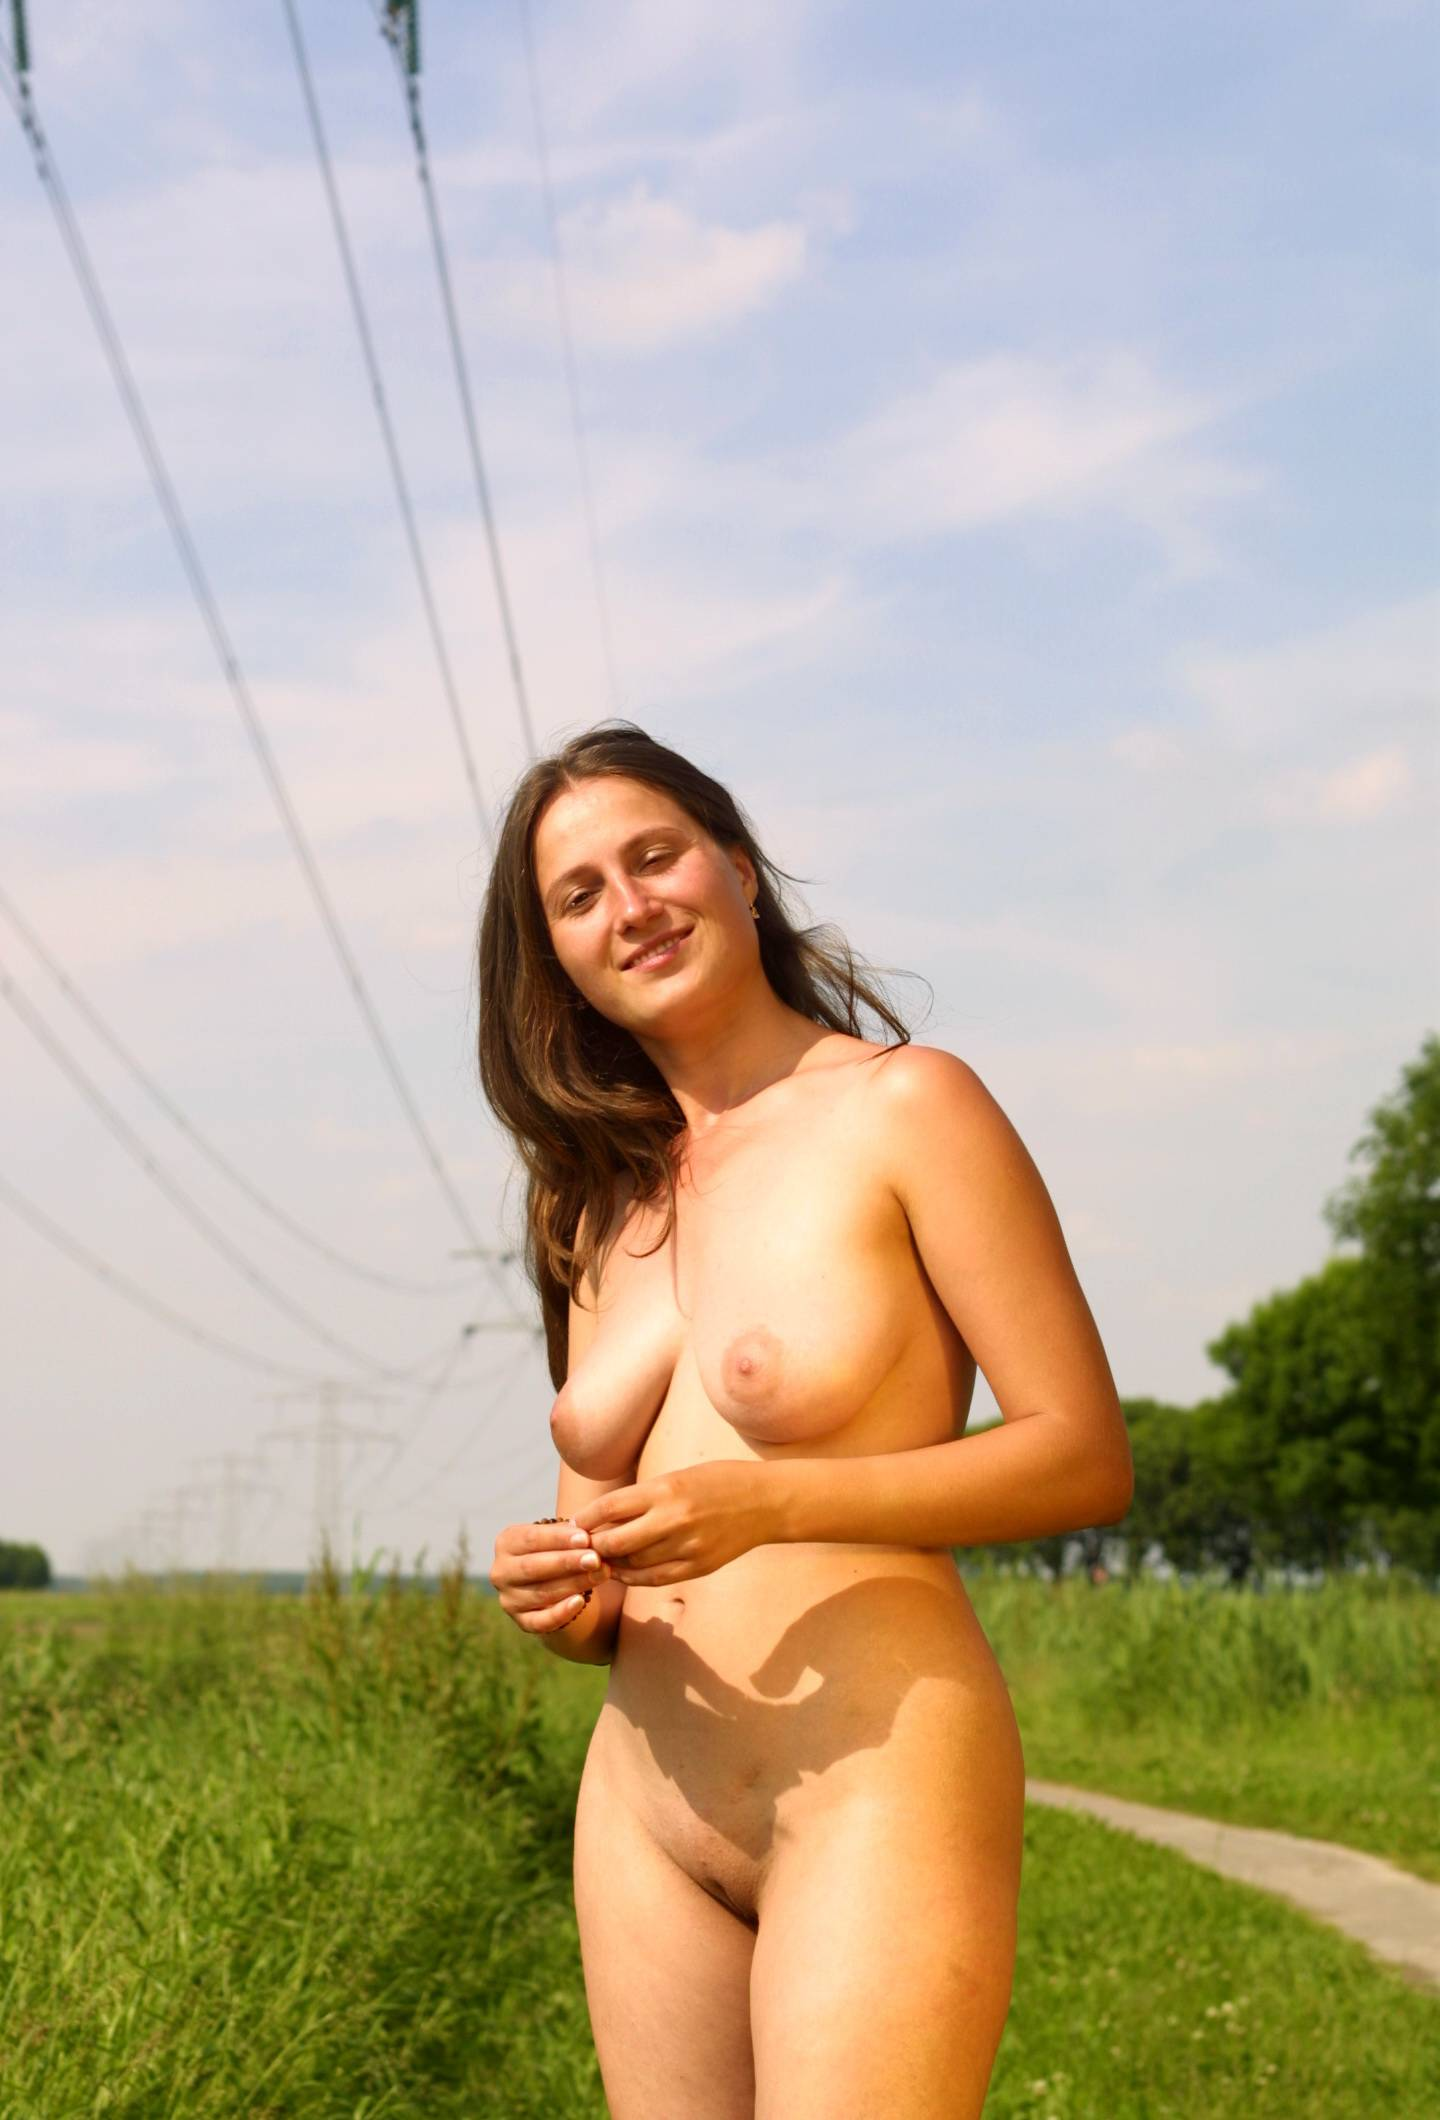 Nudist Pics Holland Naturist Beauty - 2